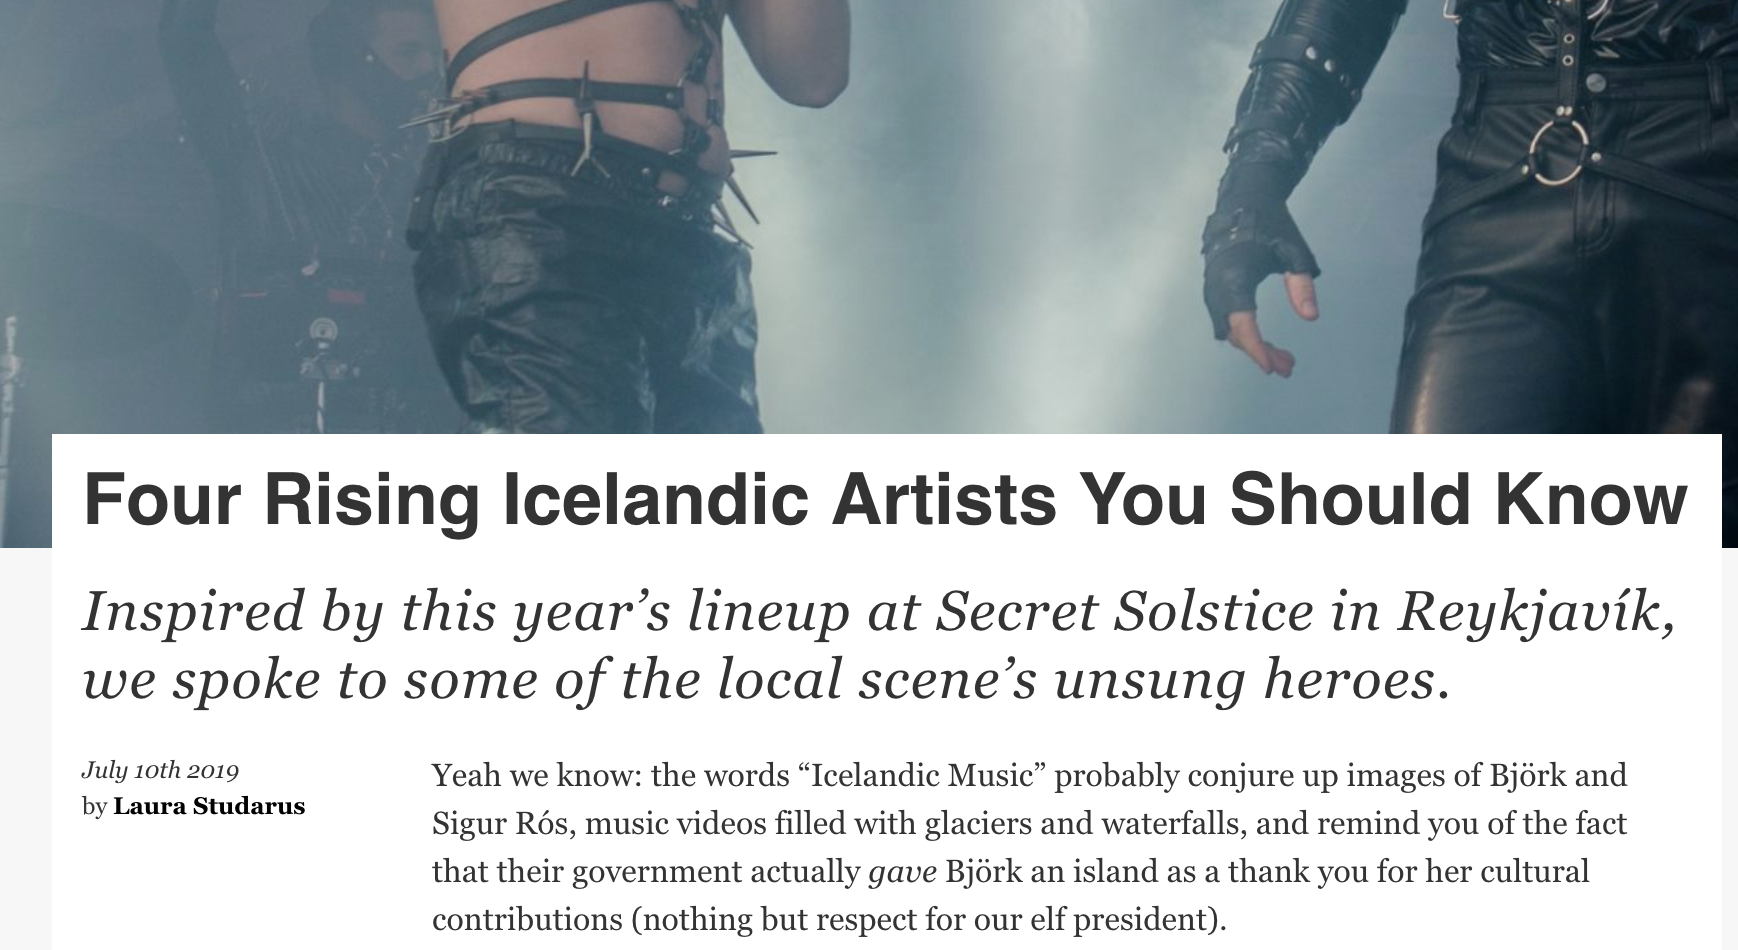 Four Rising Icelandic Artists You Should Know